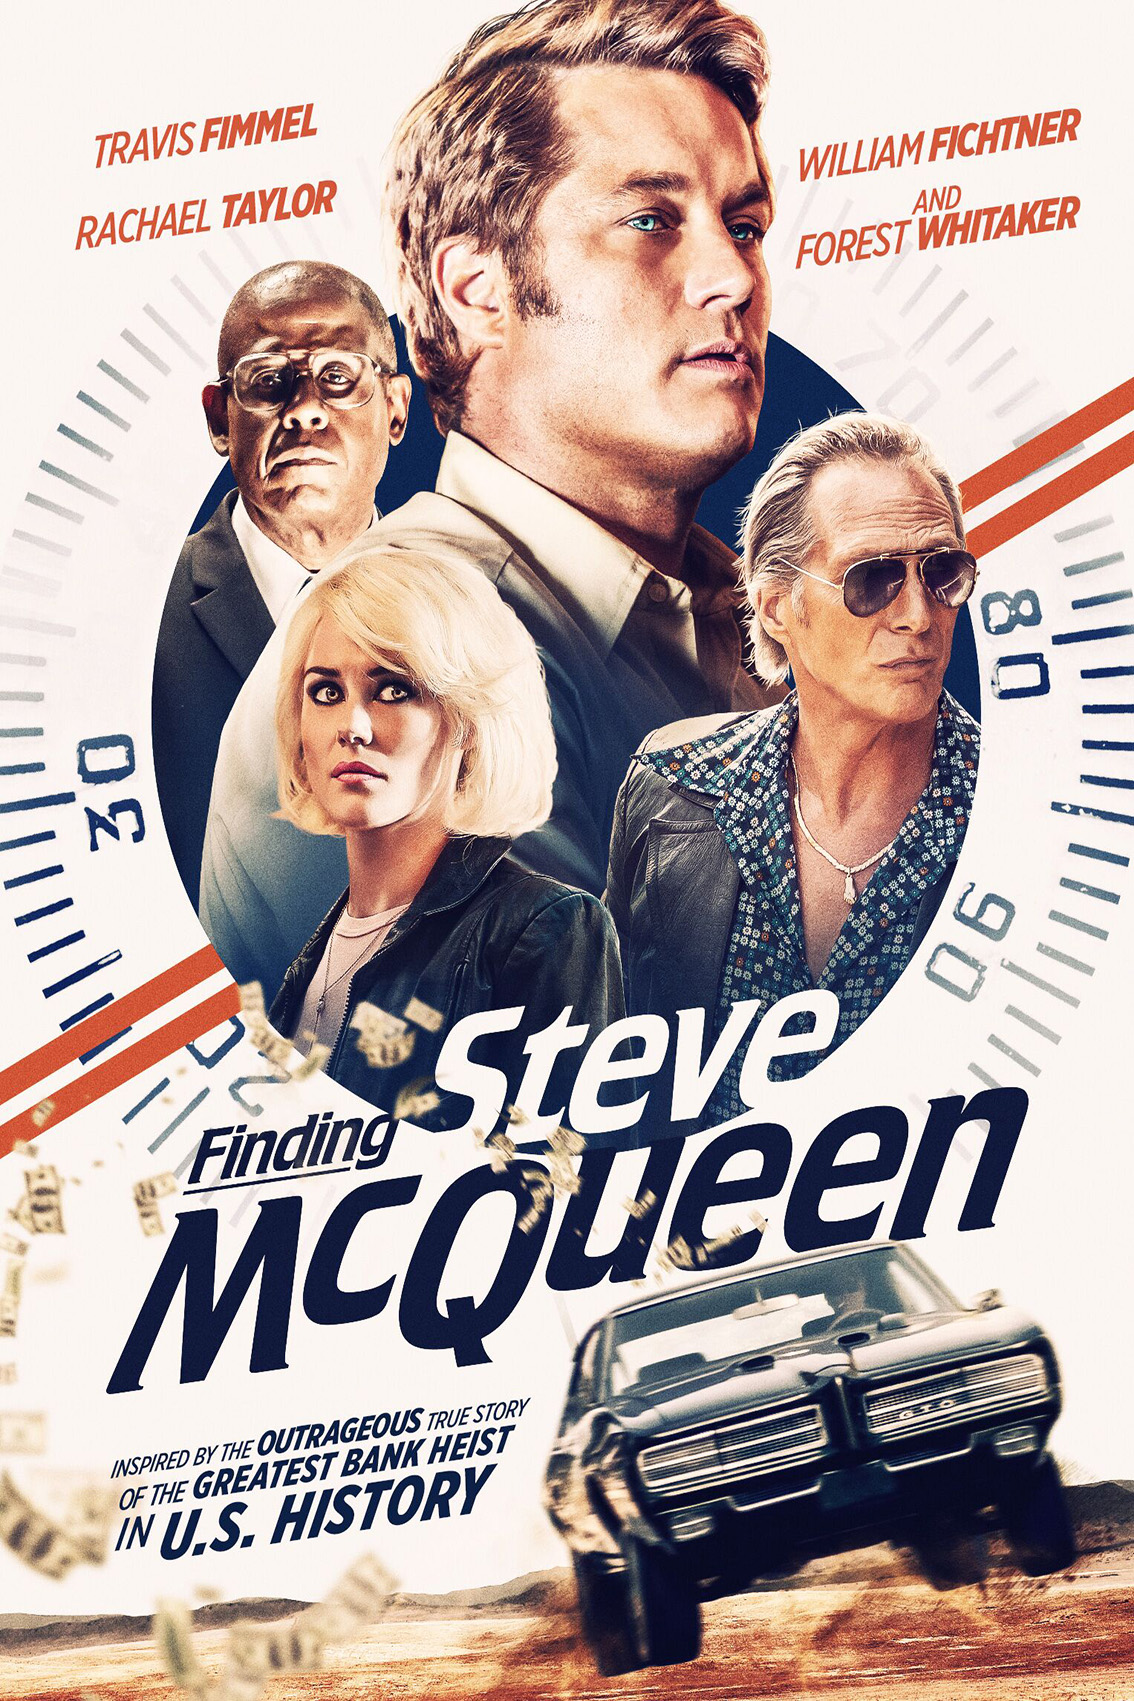 Finding Steve McQueen [2019 USA Movie] Crime, Romance